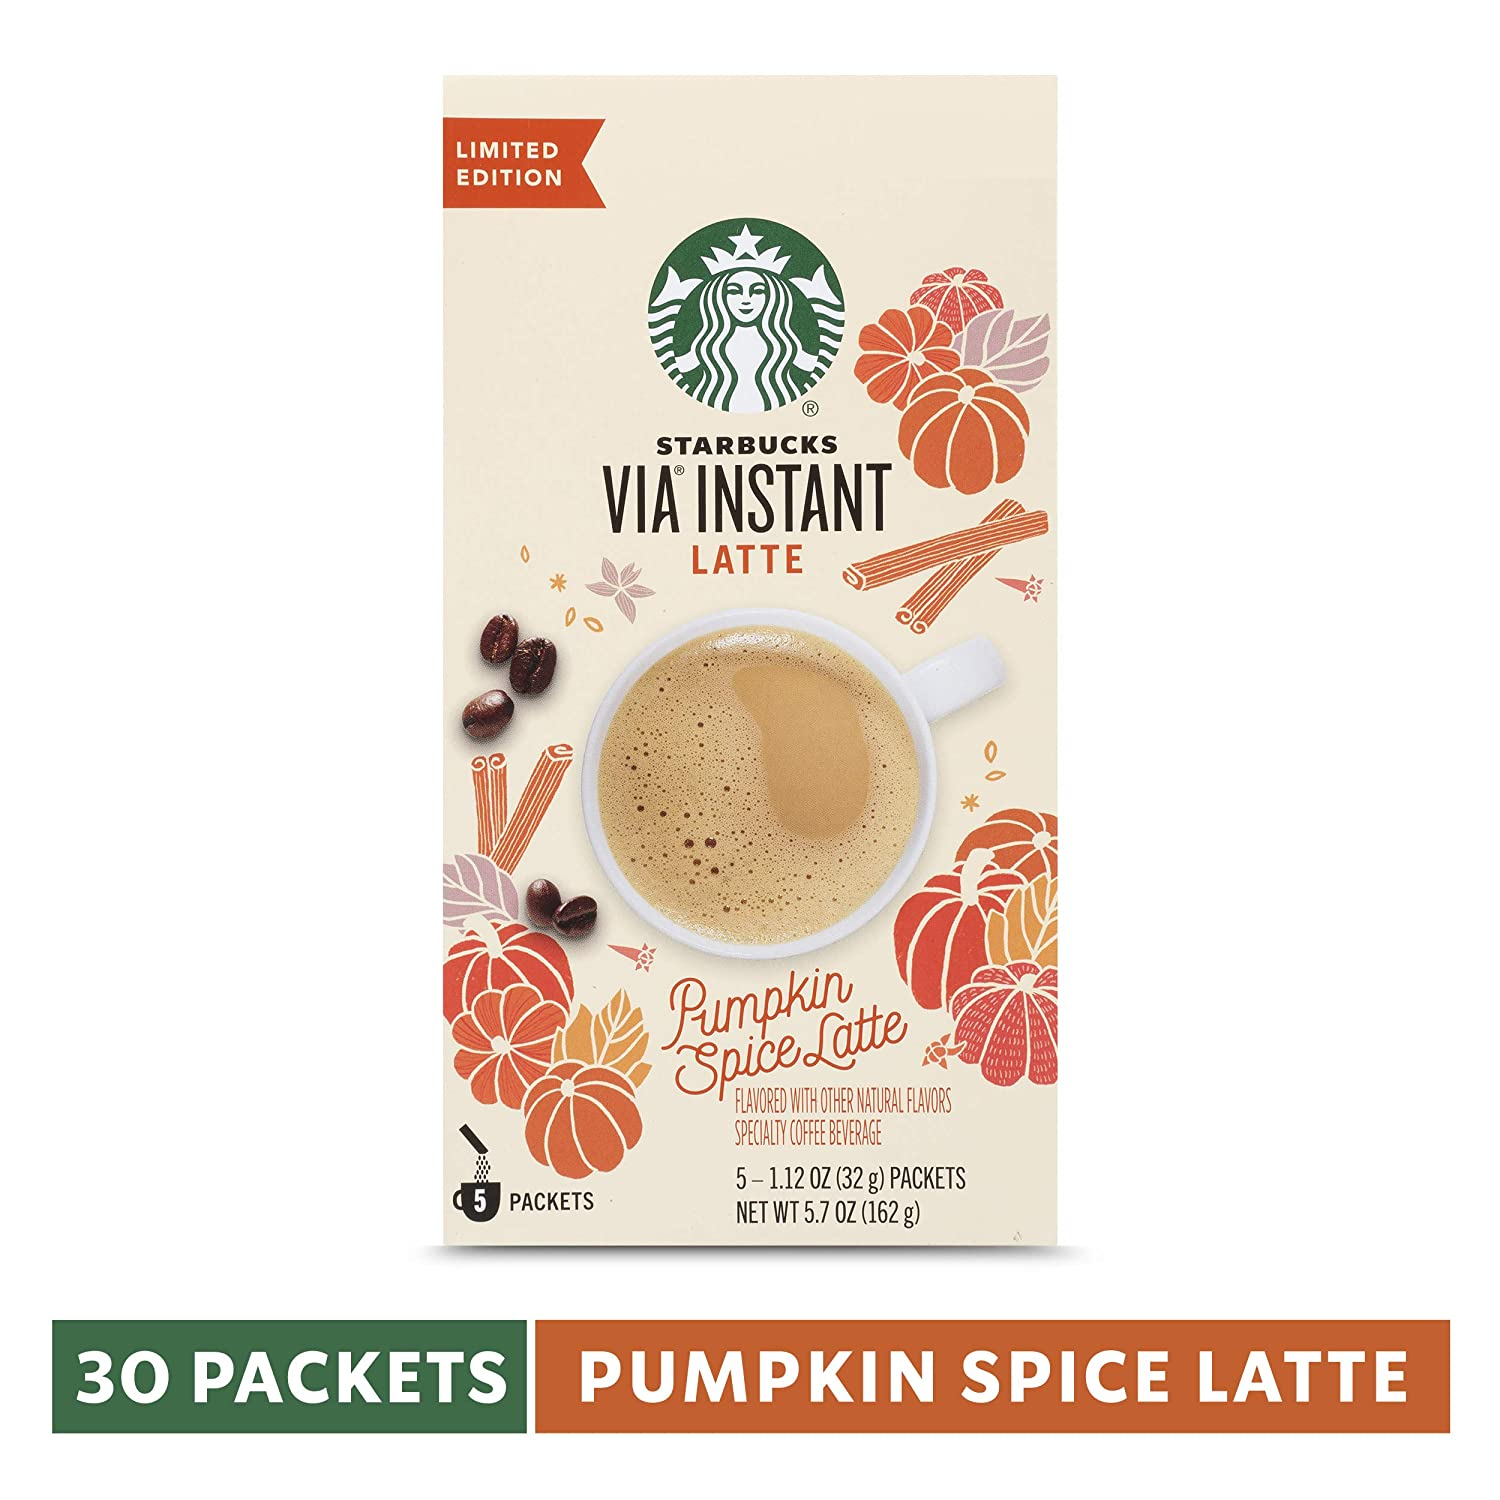 Starbucks Via Instant Pumpkin Spice Latte 6 Boxes Of 5 30 Total Packets